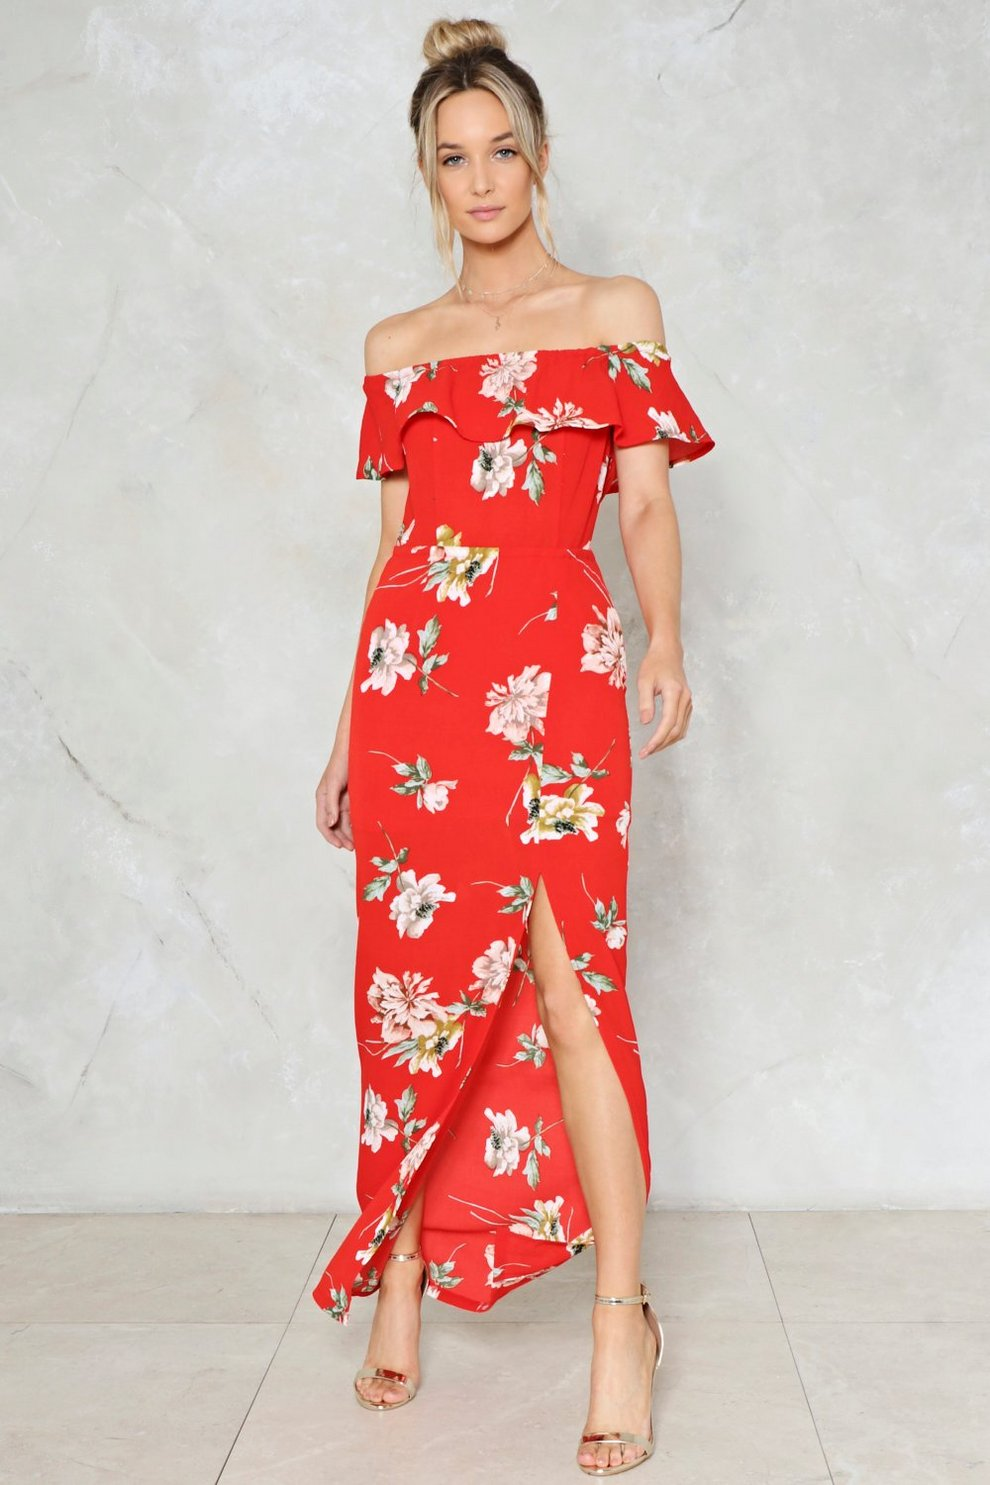 a78b949330f33 Like a Flower Floral Dress   Shop Clothes at Nasty Gal!